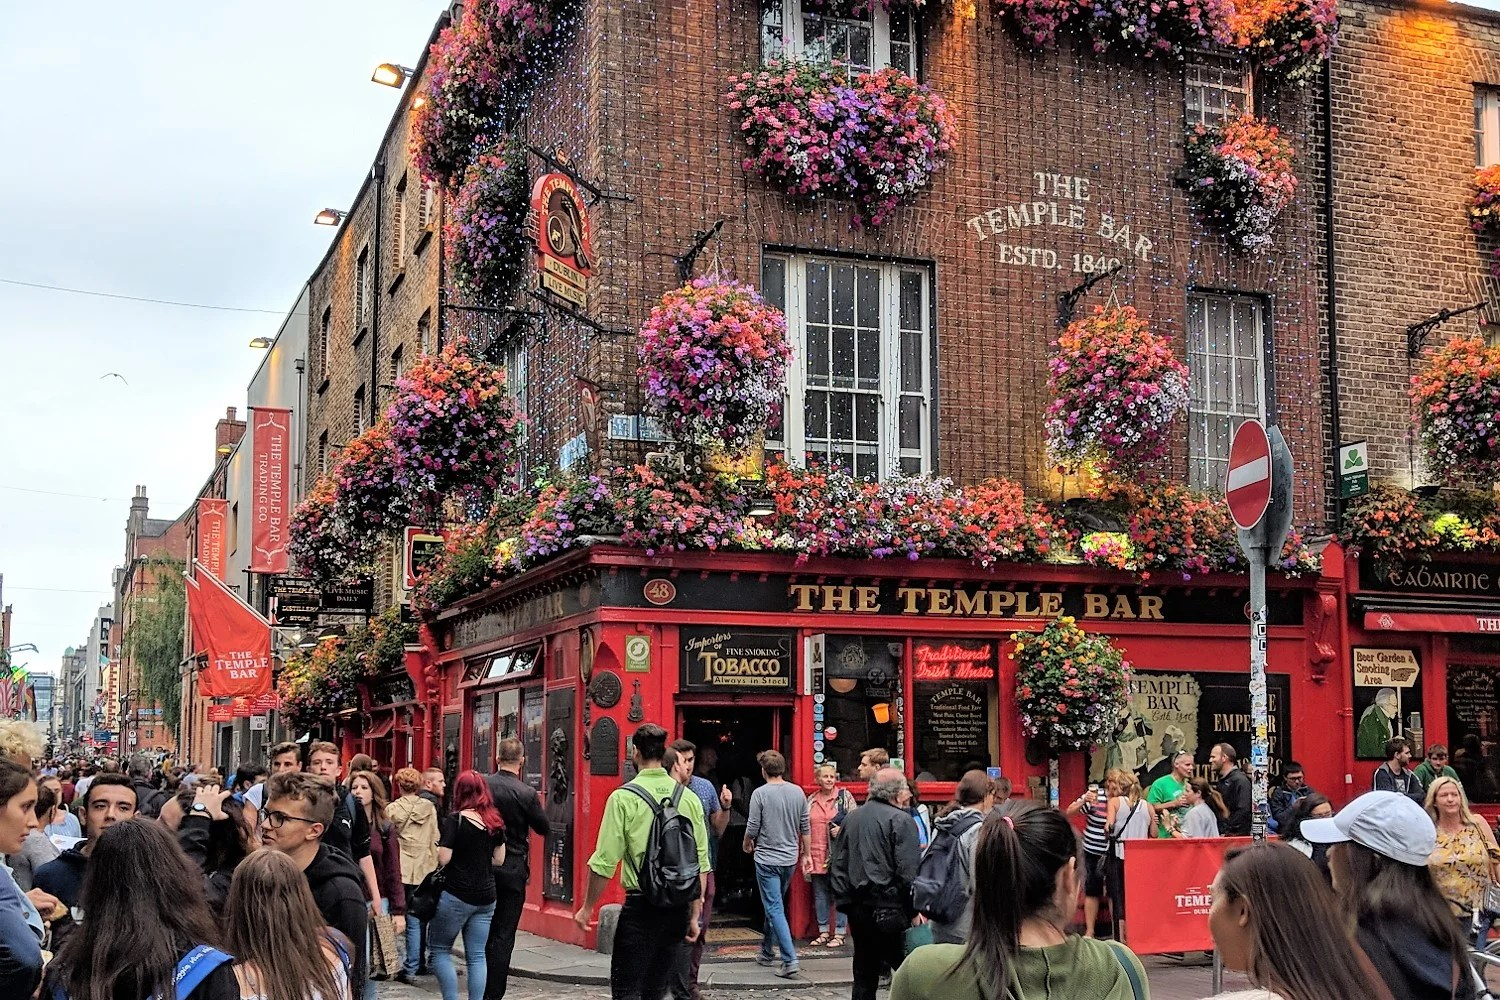 How to Spend an Overnight Layover in Dublin